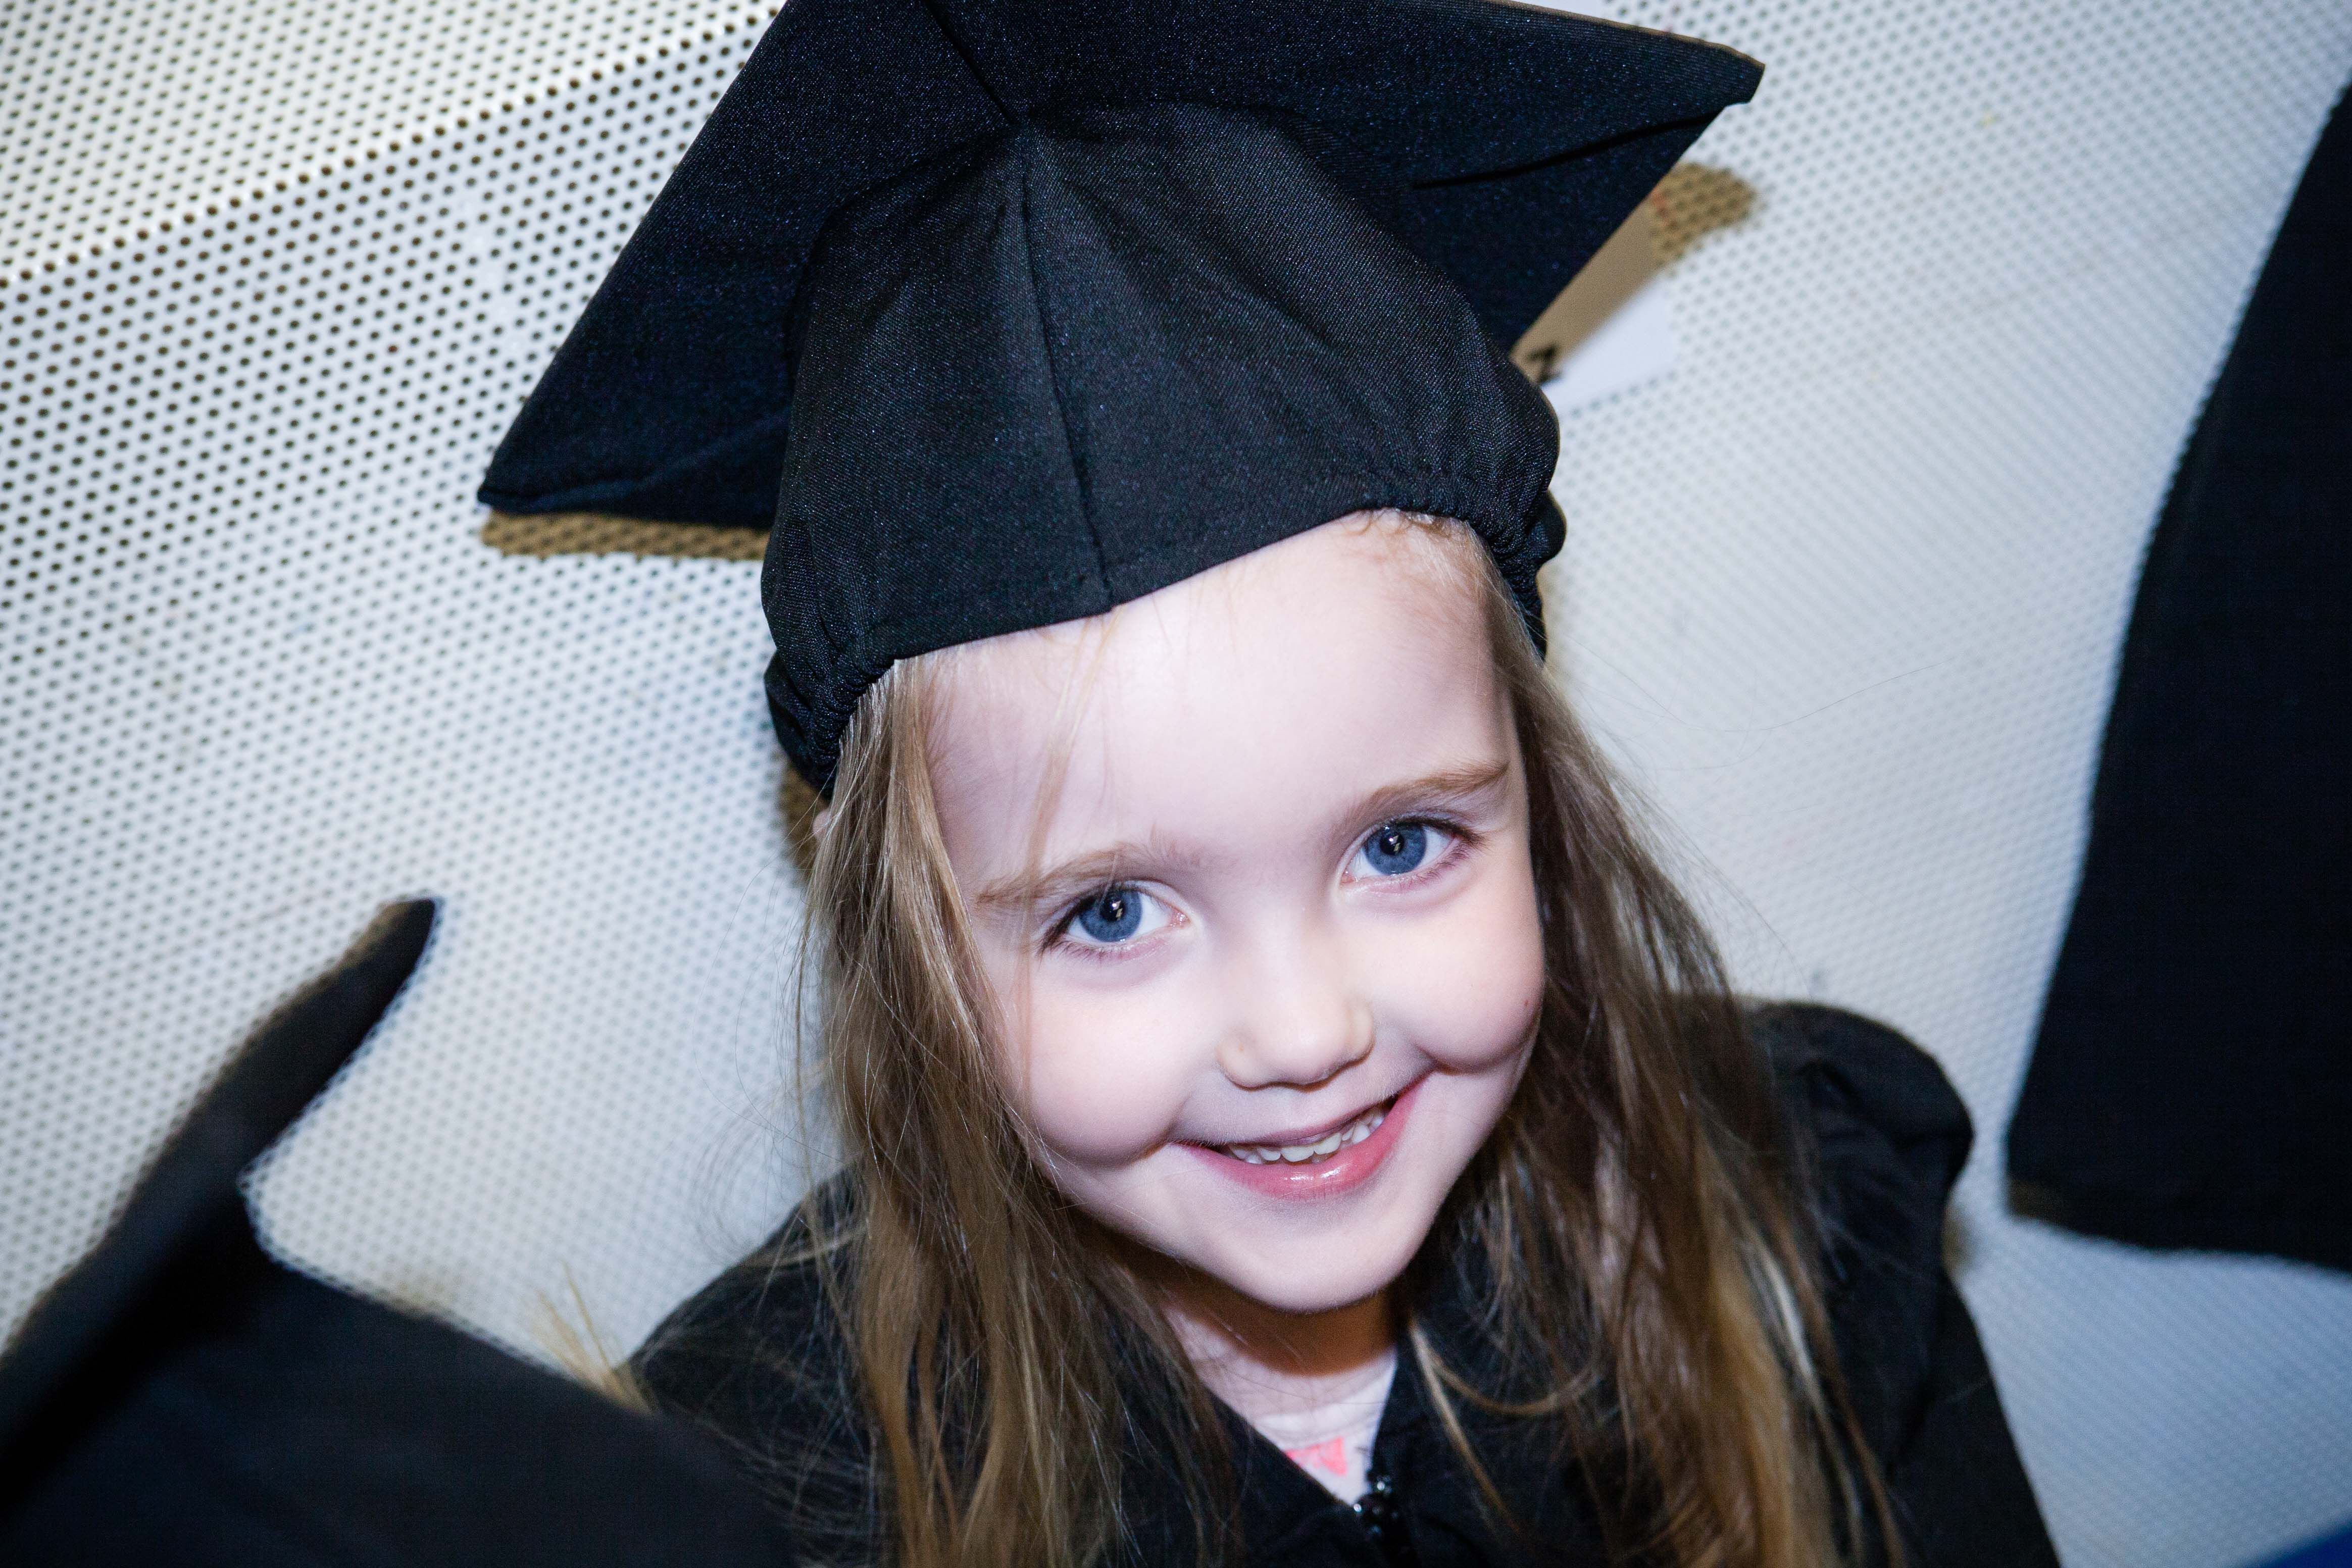 The excitement of her 'gradulation day' (thats how she says it!)